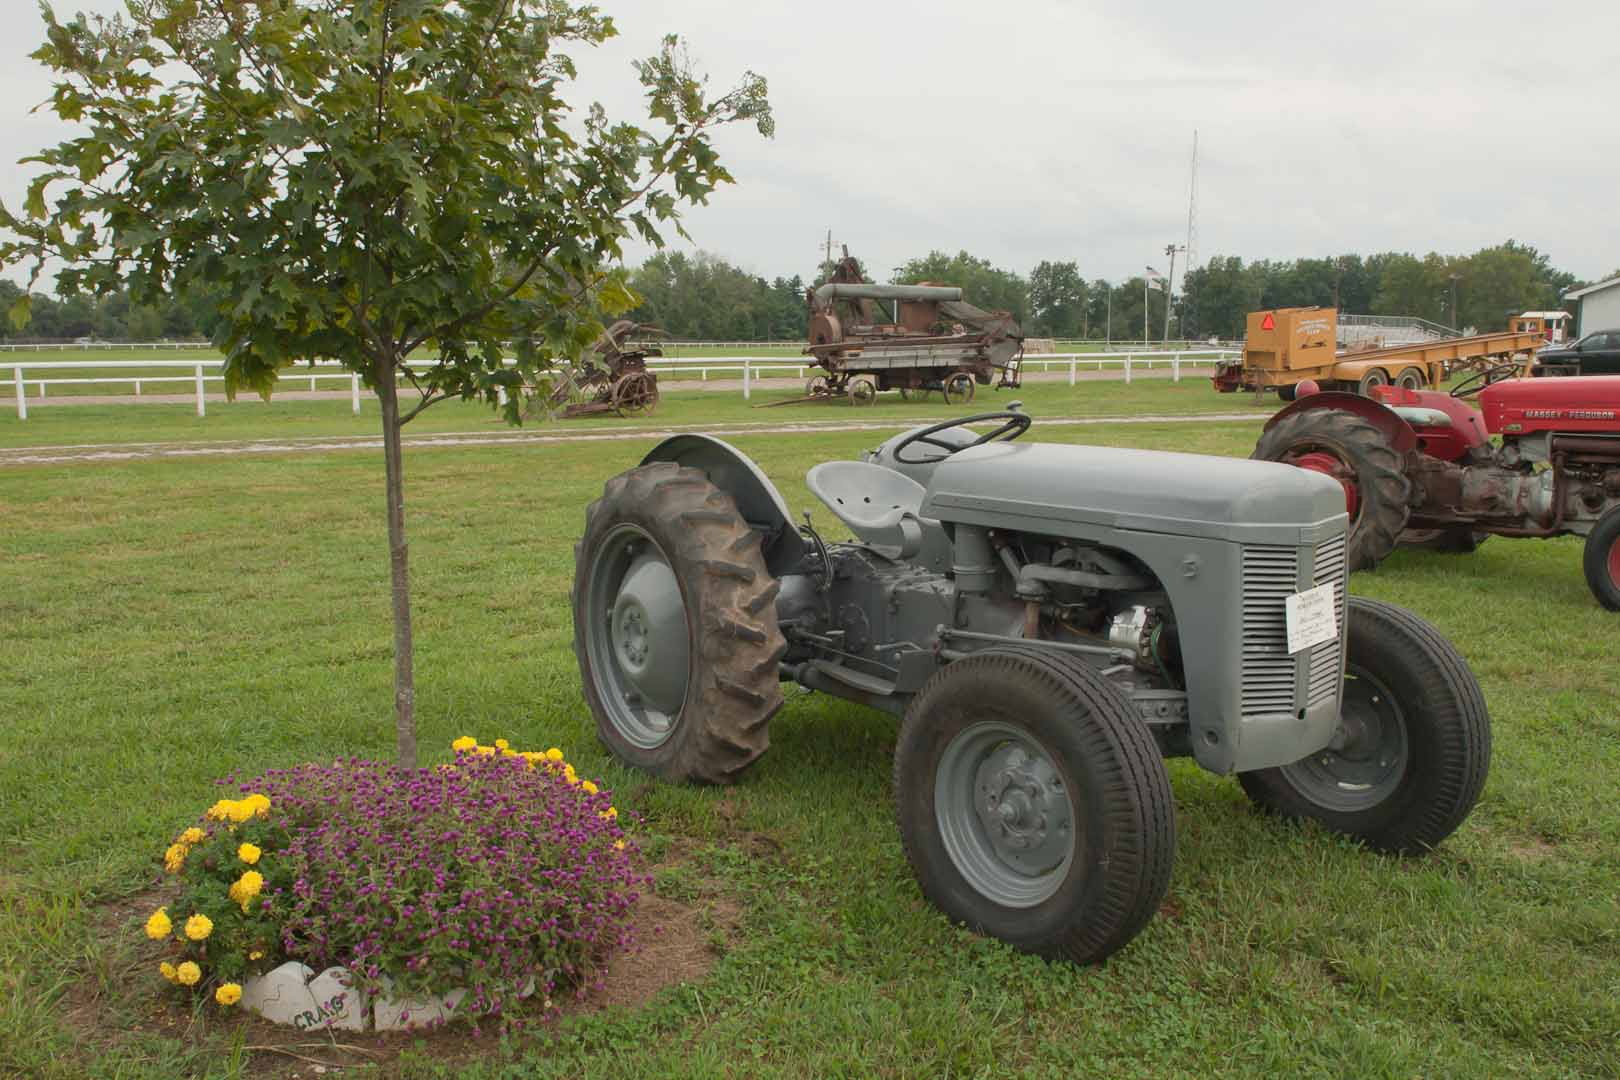 1952 TO-30 SN TO-83330 owned by Jim Malone of Odin, IL.